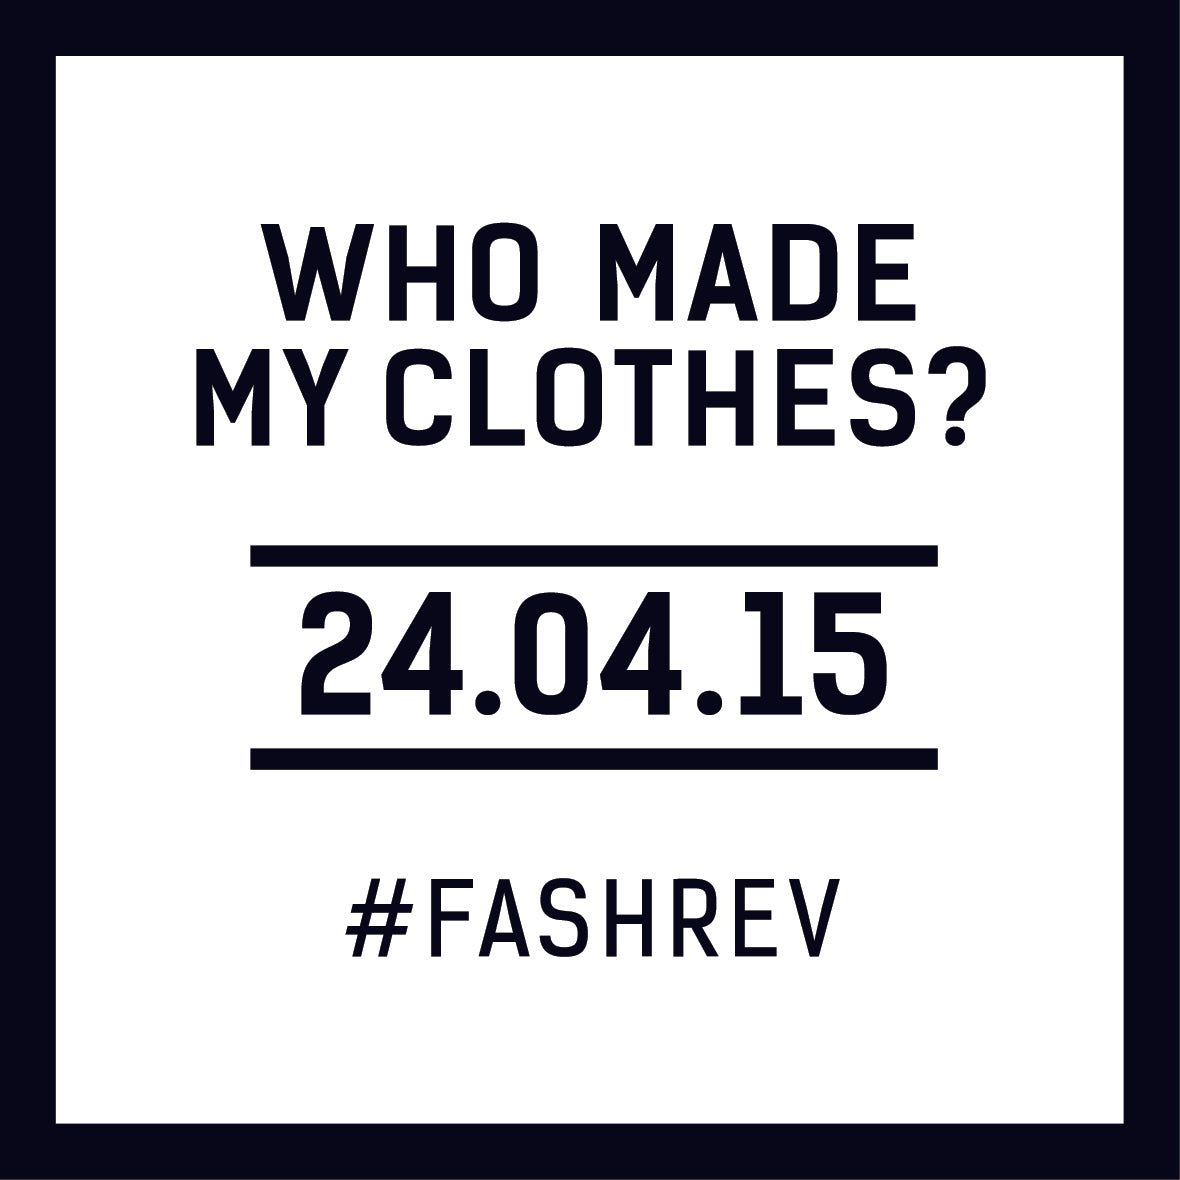 fashion revolution 2015, who made your clothes